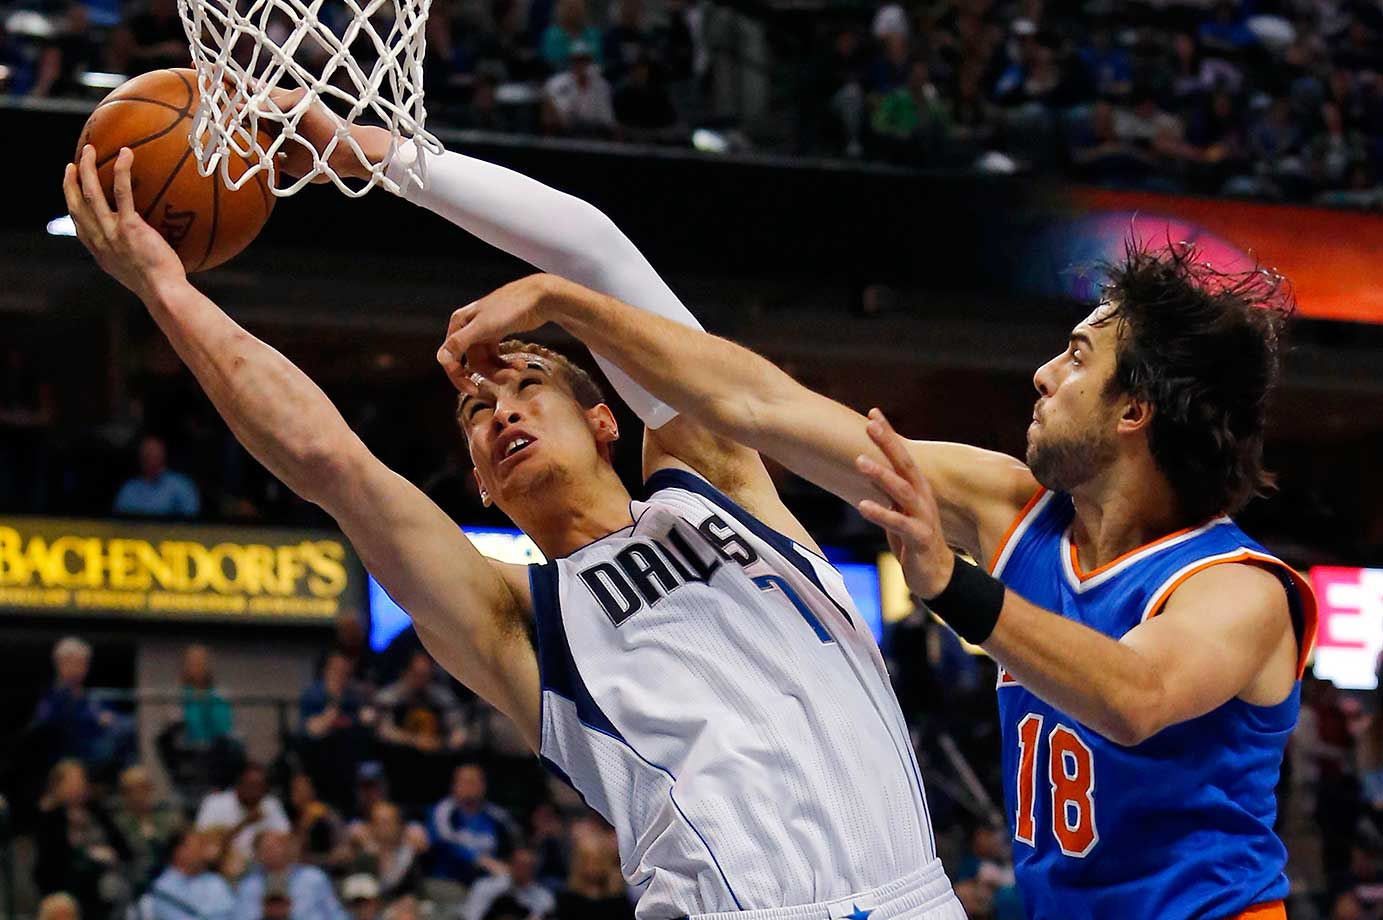 Dallas Mavericks' Dwight Powell shoots a layup while fouled by Sasha Vujacic of the Knicks.